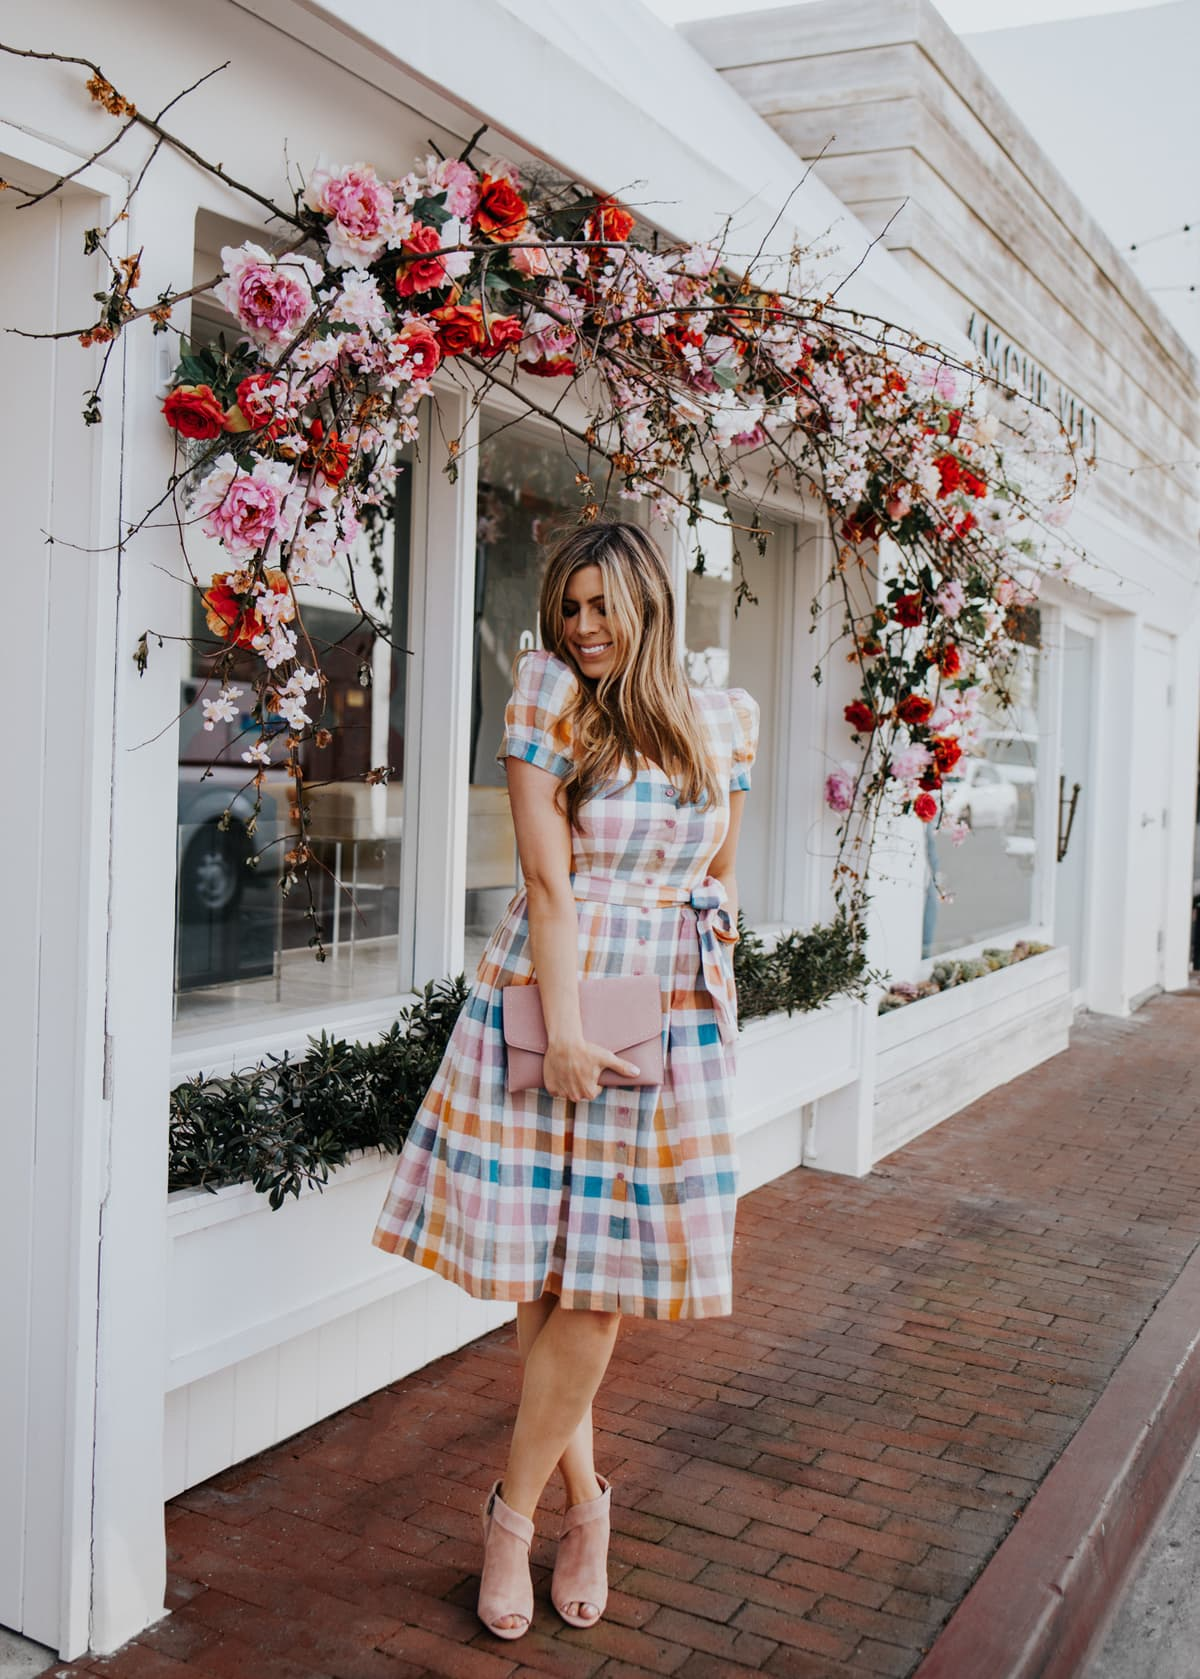 cbee9c56a4381 The prettiest Easter Dresses on the Internet 2019! - Mint Arrow